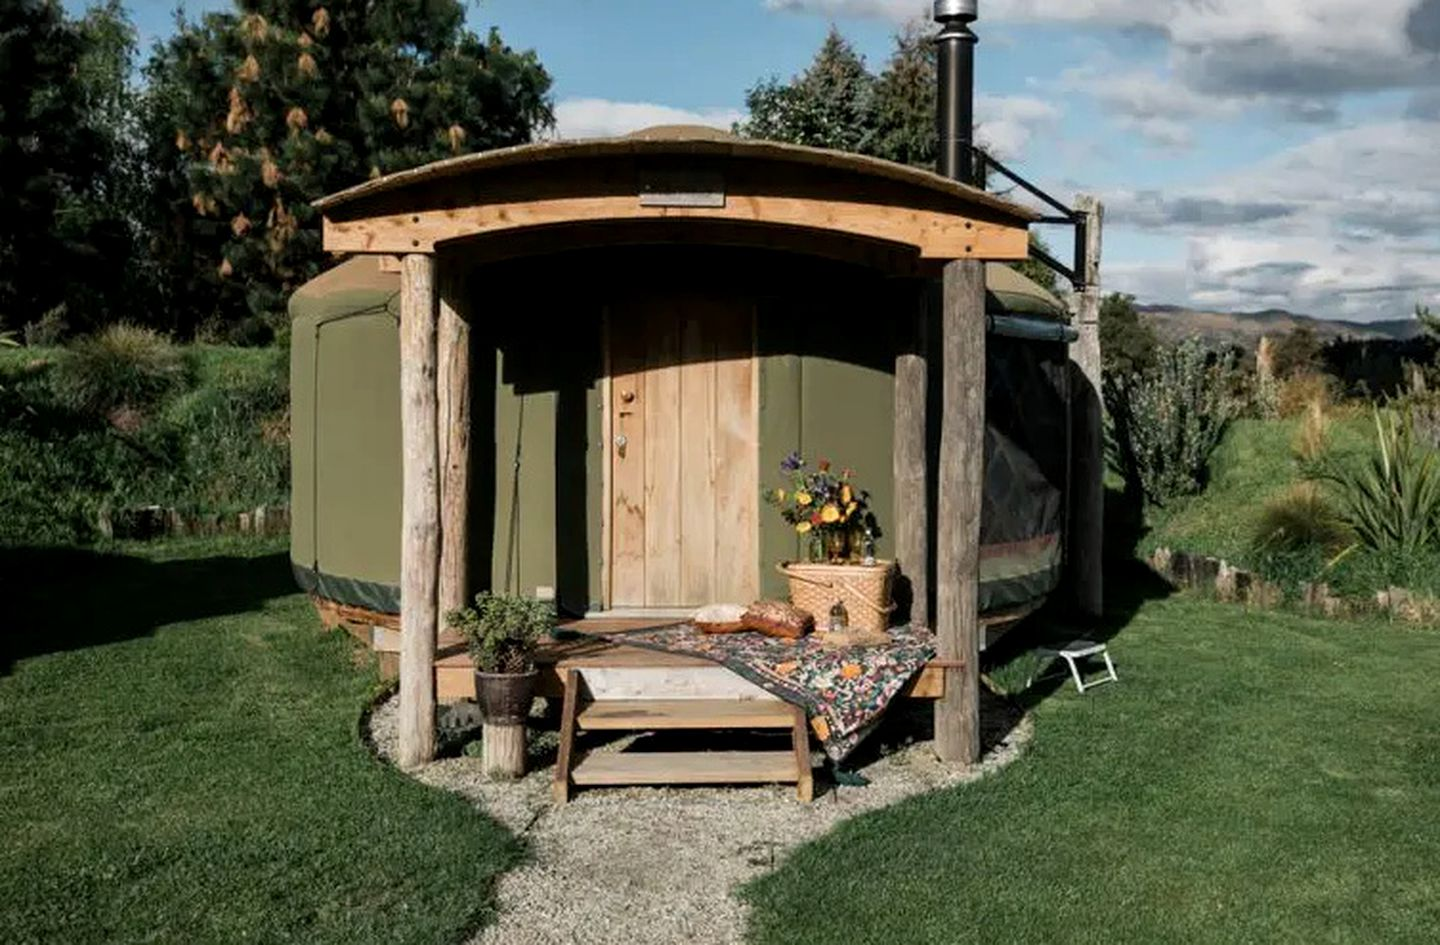 This yurt rental is ideal for glamping in New Zealand